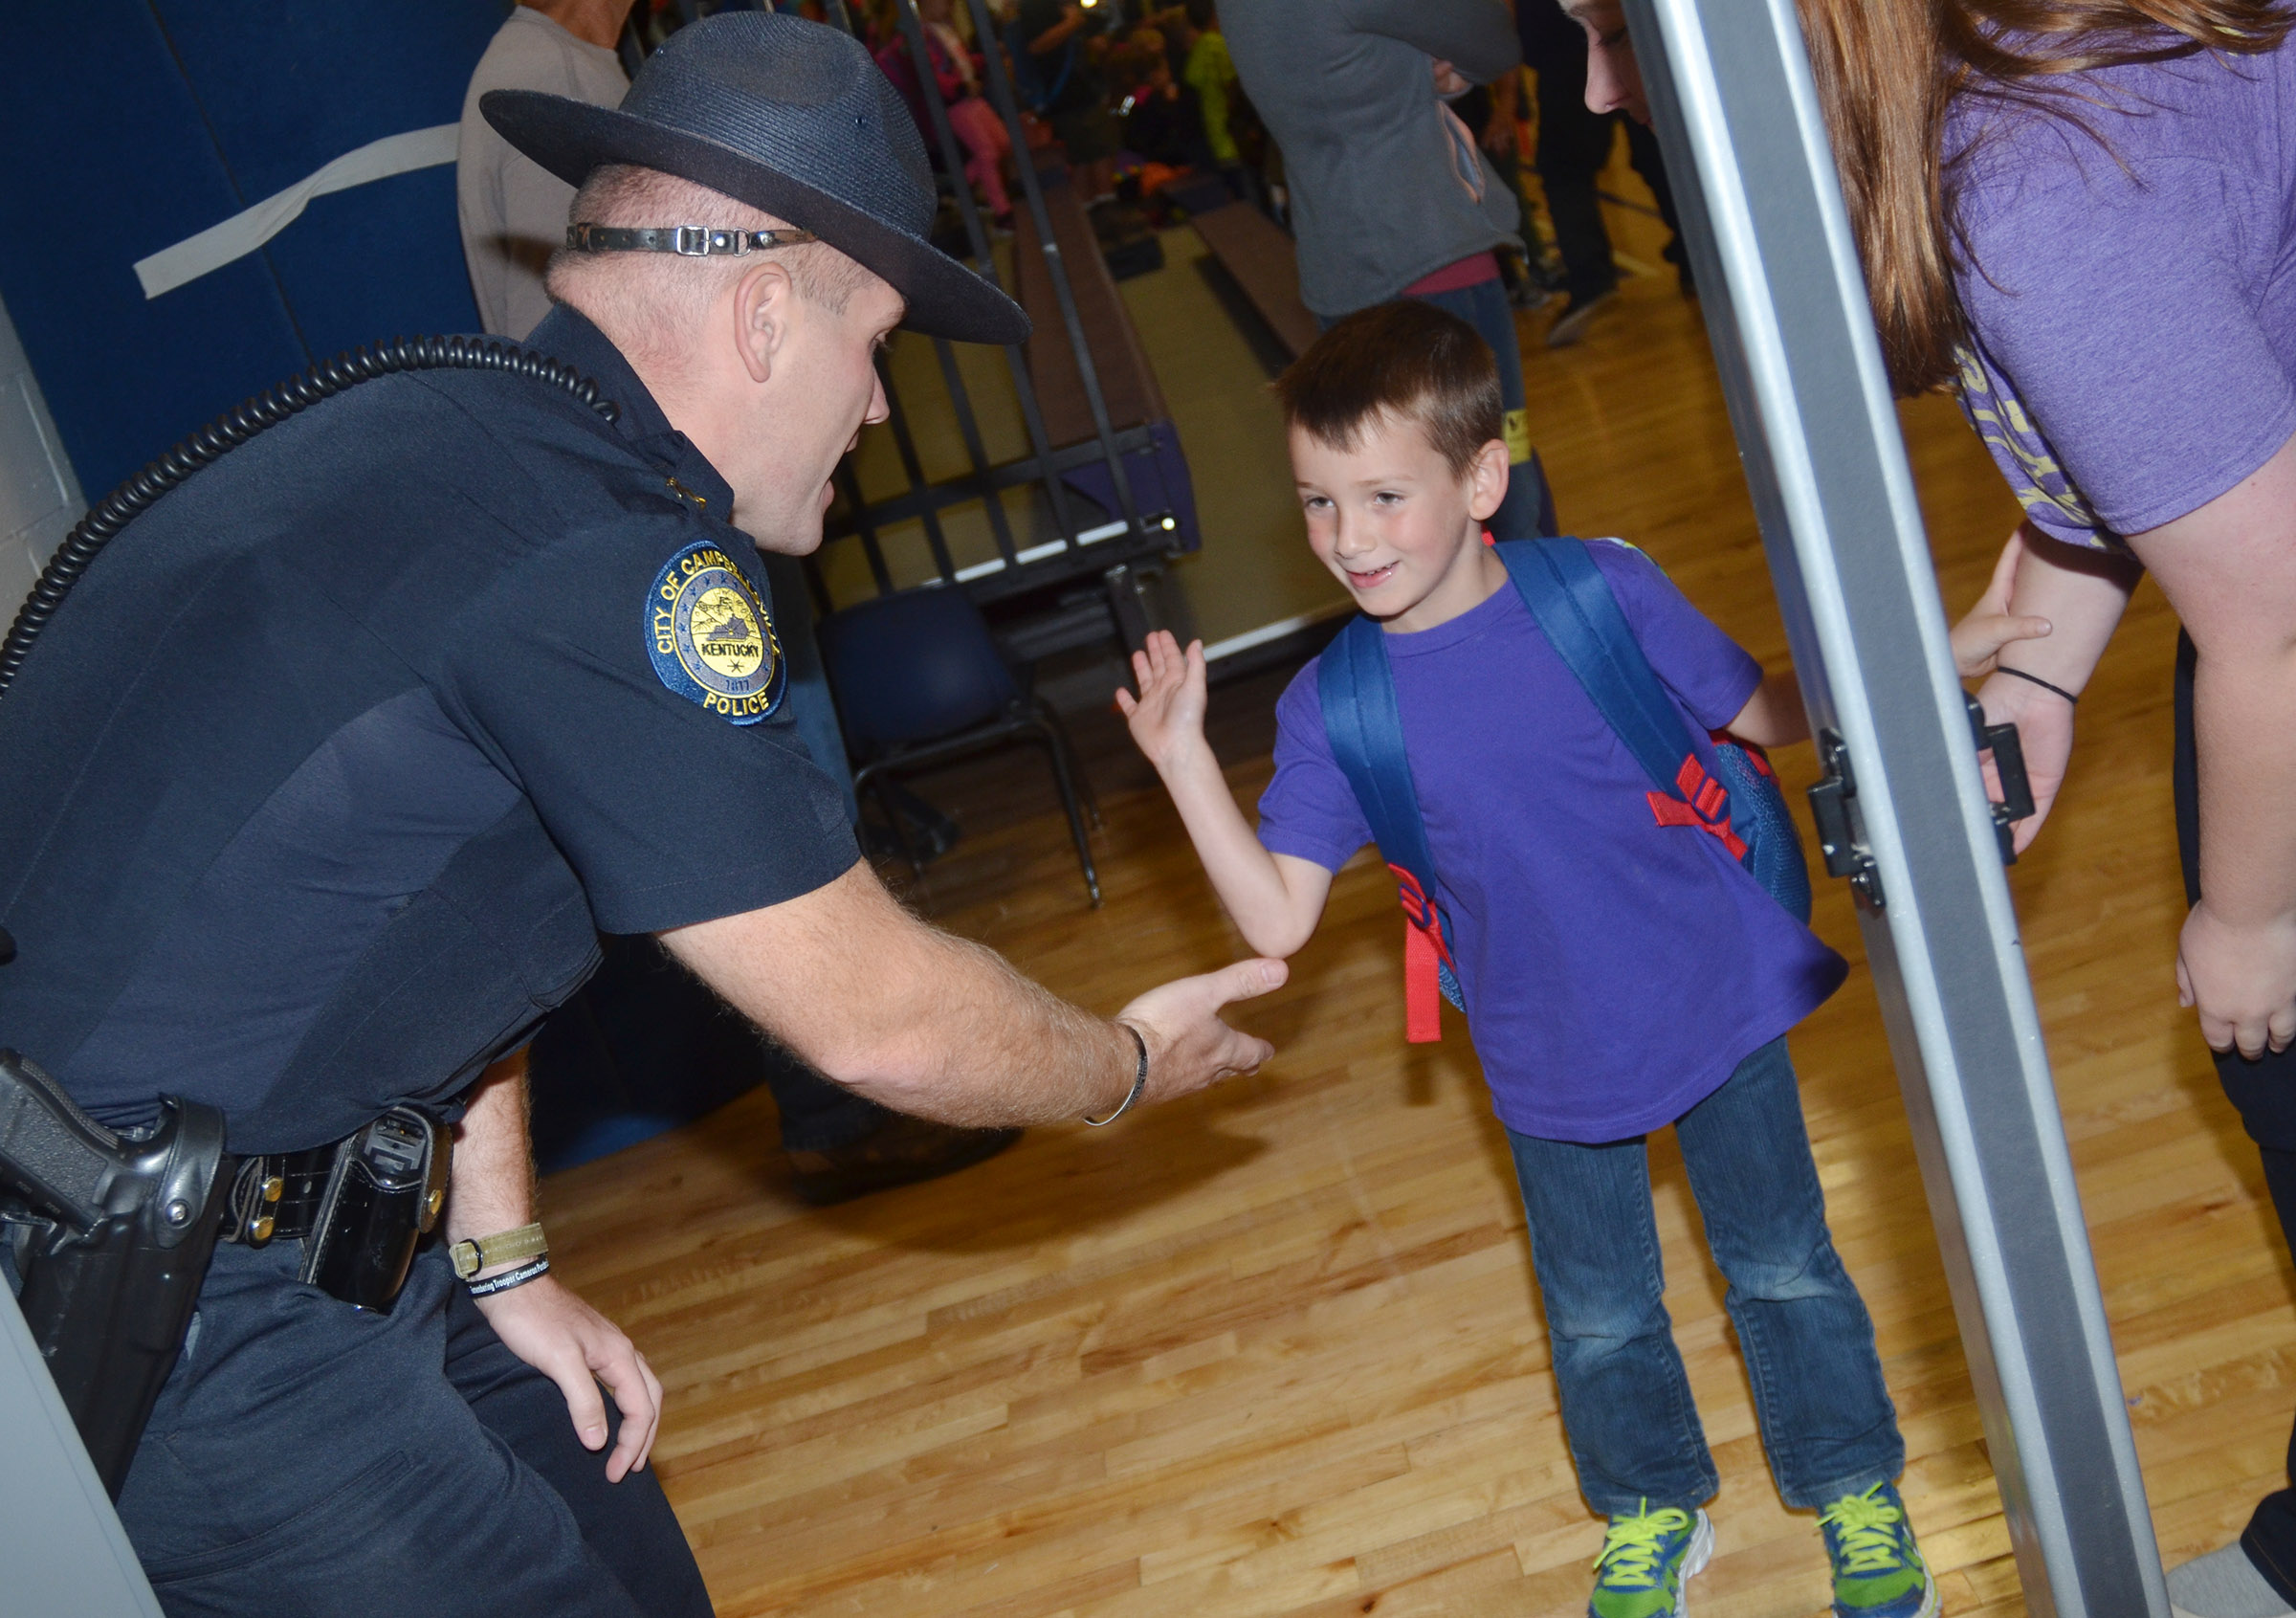 Campbellsville Police Officer Jake Hedgespeth greets kindergartener Cash Davis, who says he wants to be a police officer when he gets older.